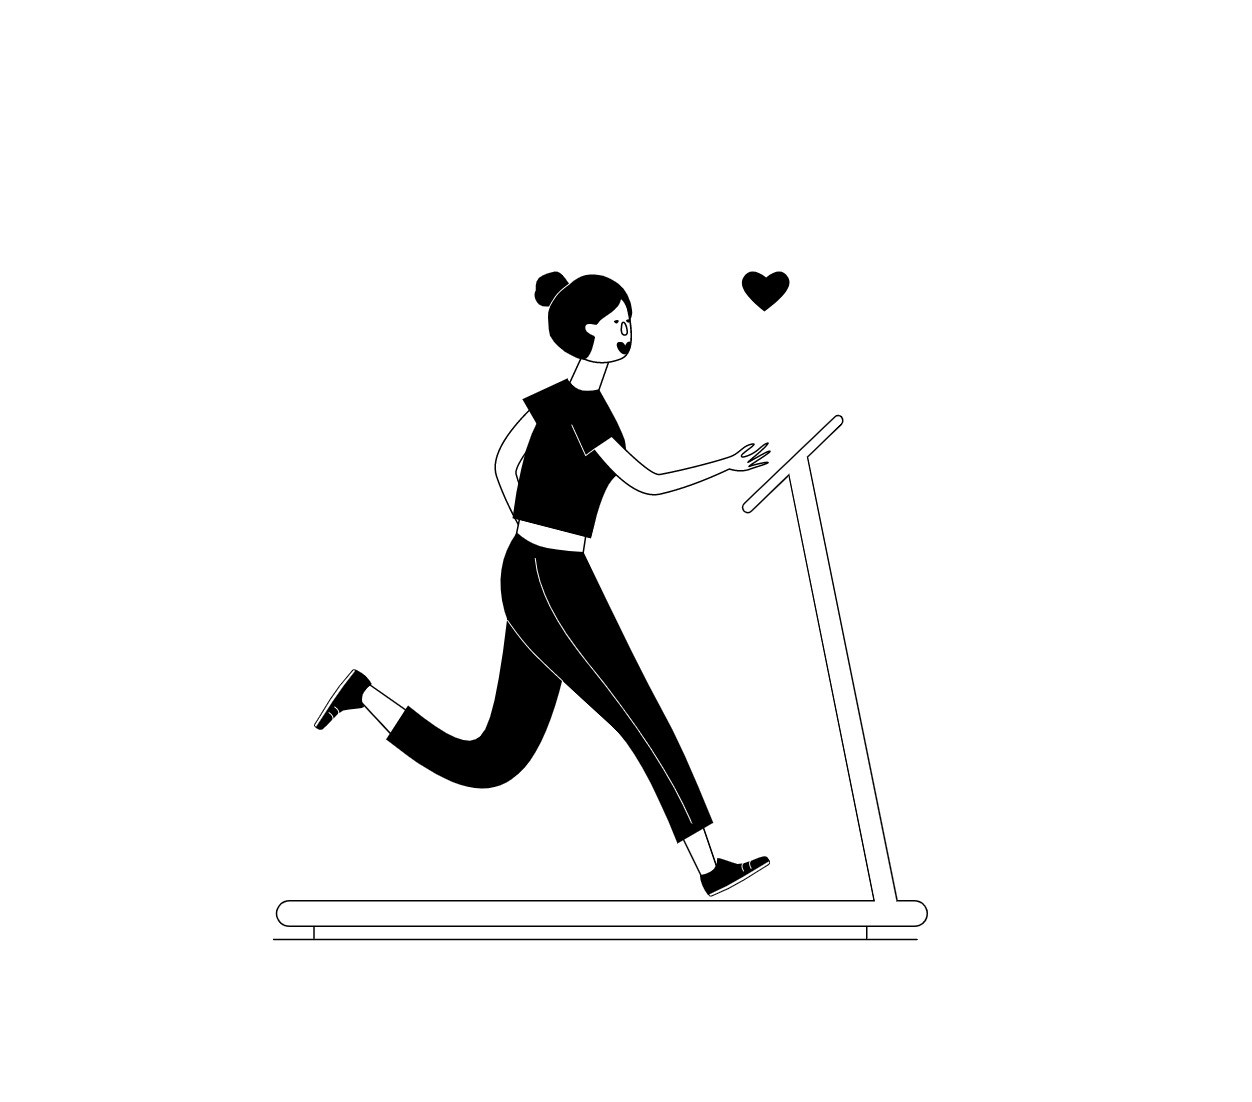 A happy woman running on a treadmill.